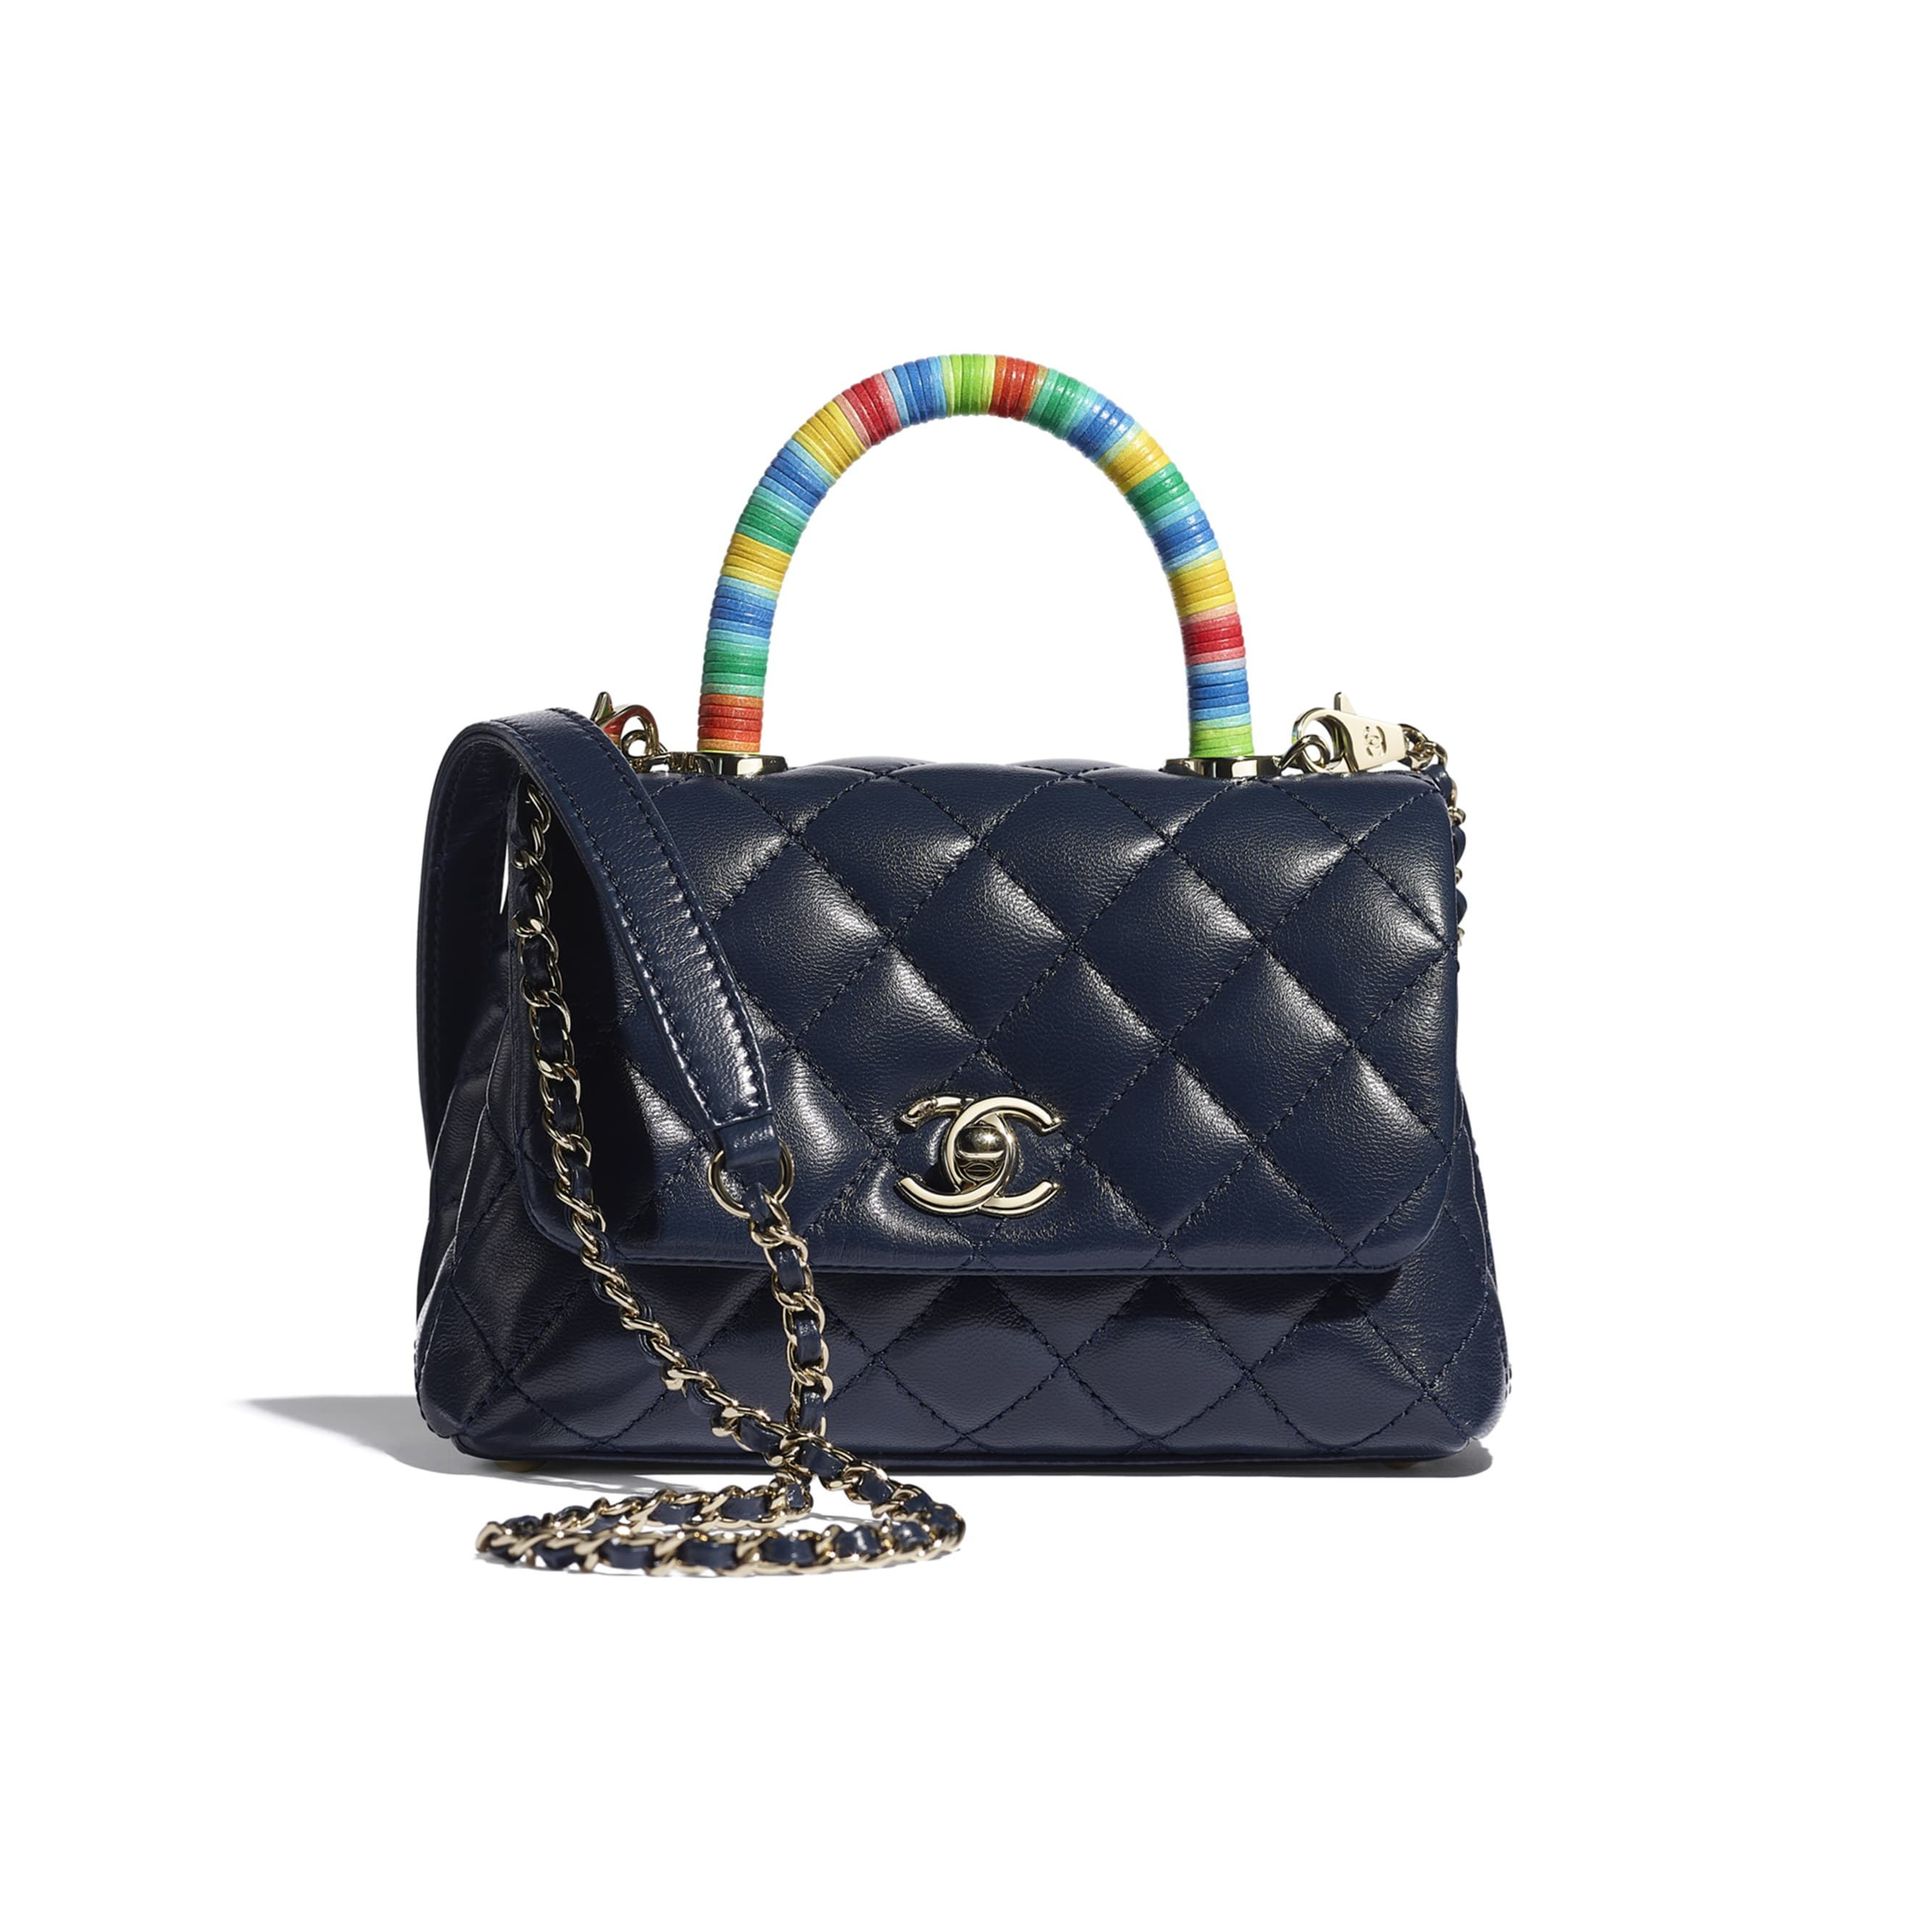 Mini Flap Bag with Top Handle - Navy Blue - Goatskin & Gold-Tone Metal - CHANEL - Default view - see standard sized version